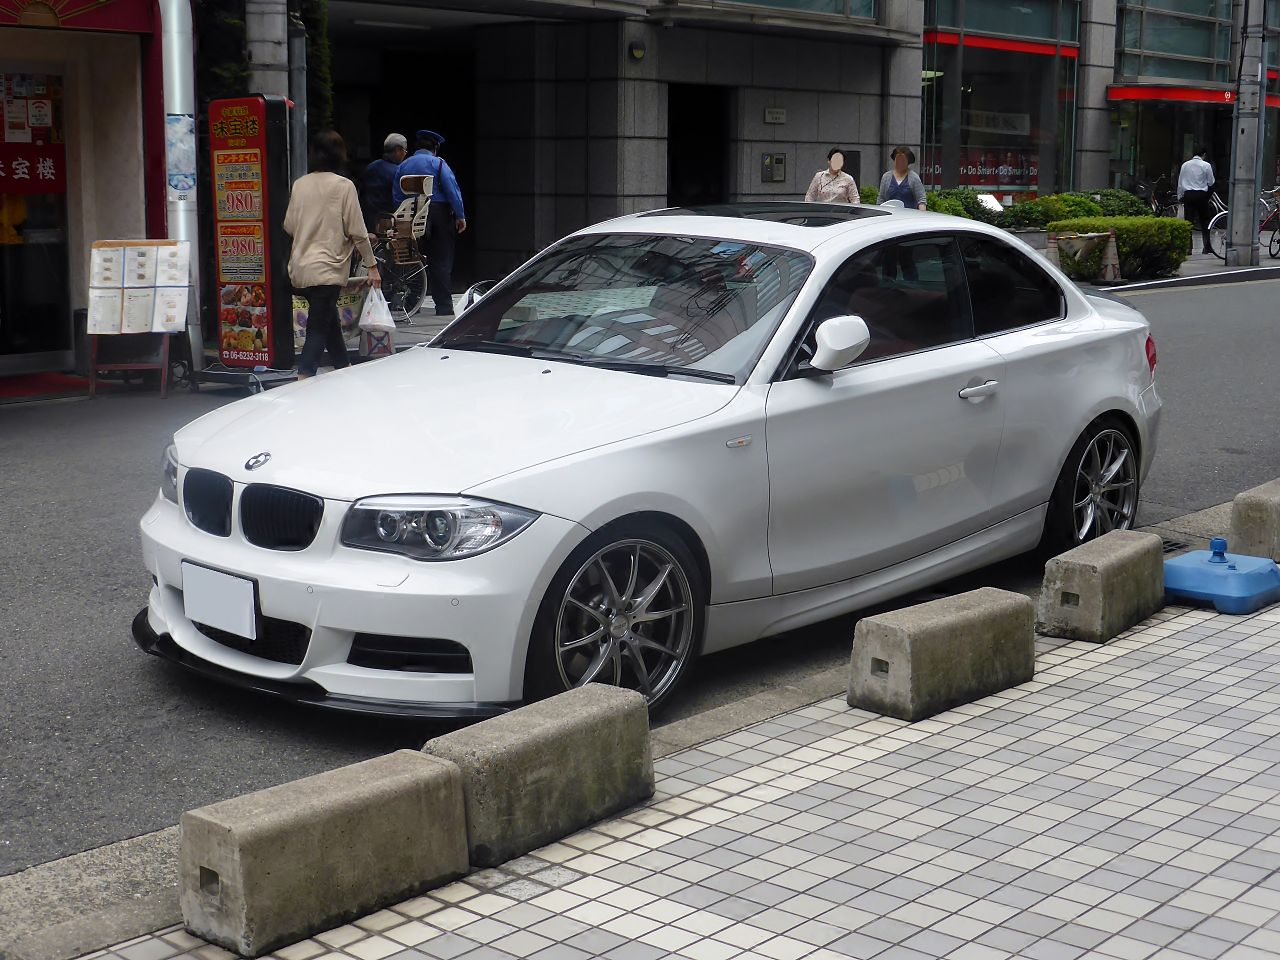 file bmw 135i coupe e82 front jpg wikimedia commons. Black Bedroom Furniture Sets. Home Design Ideas